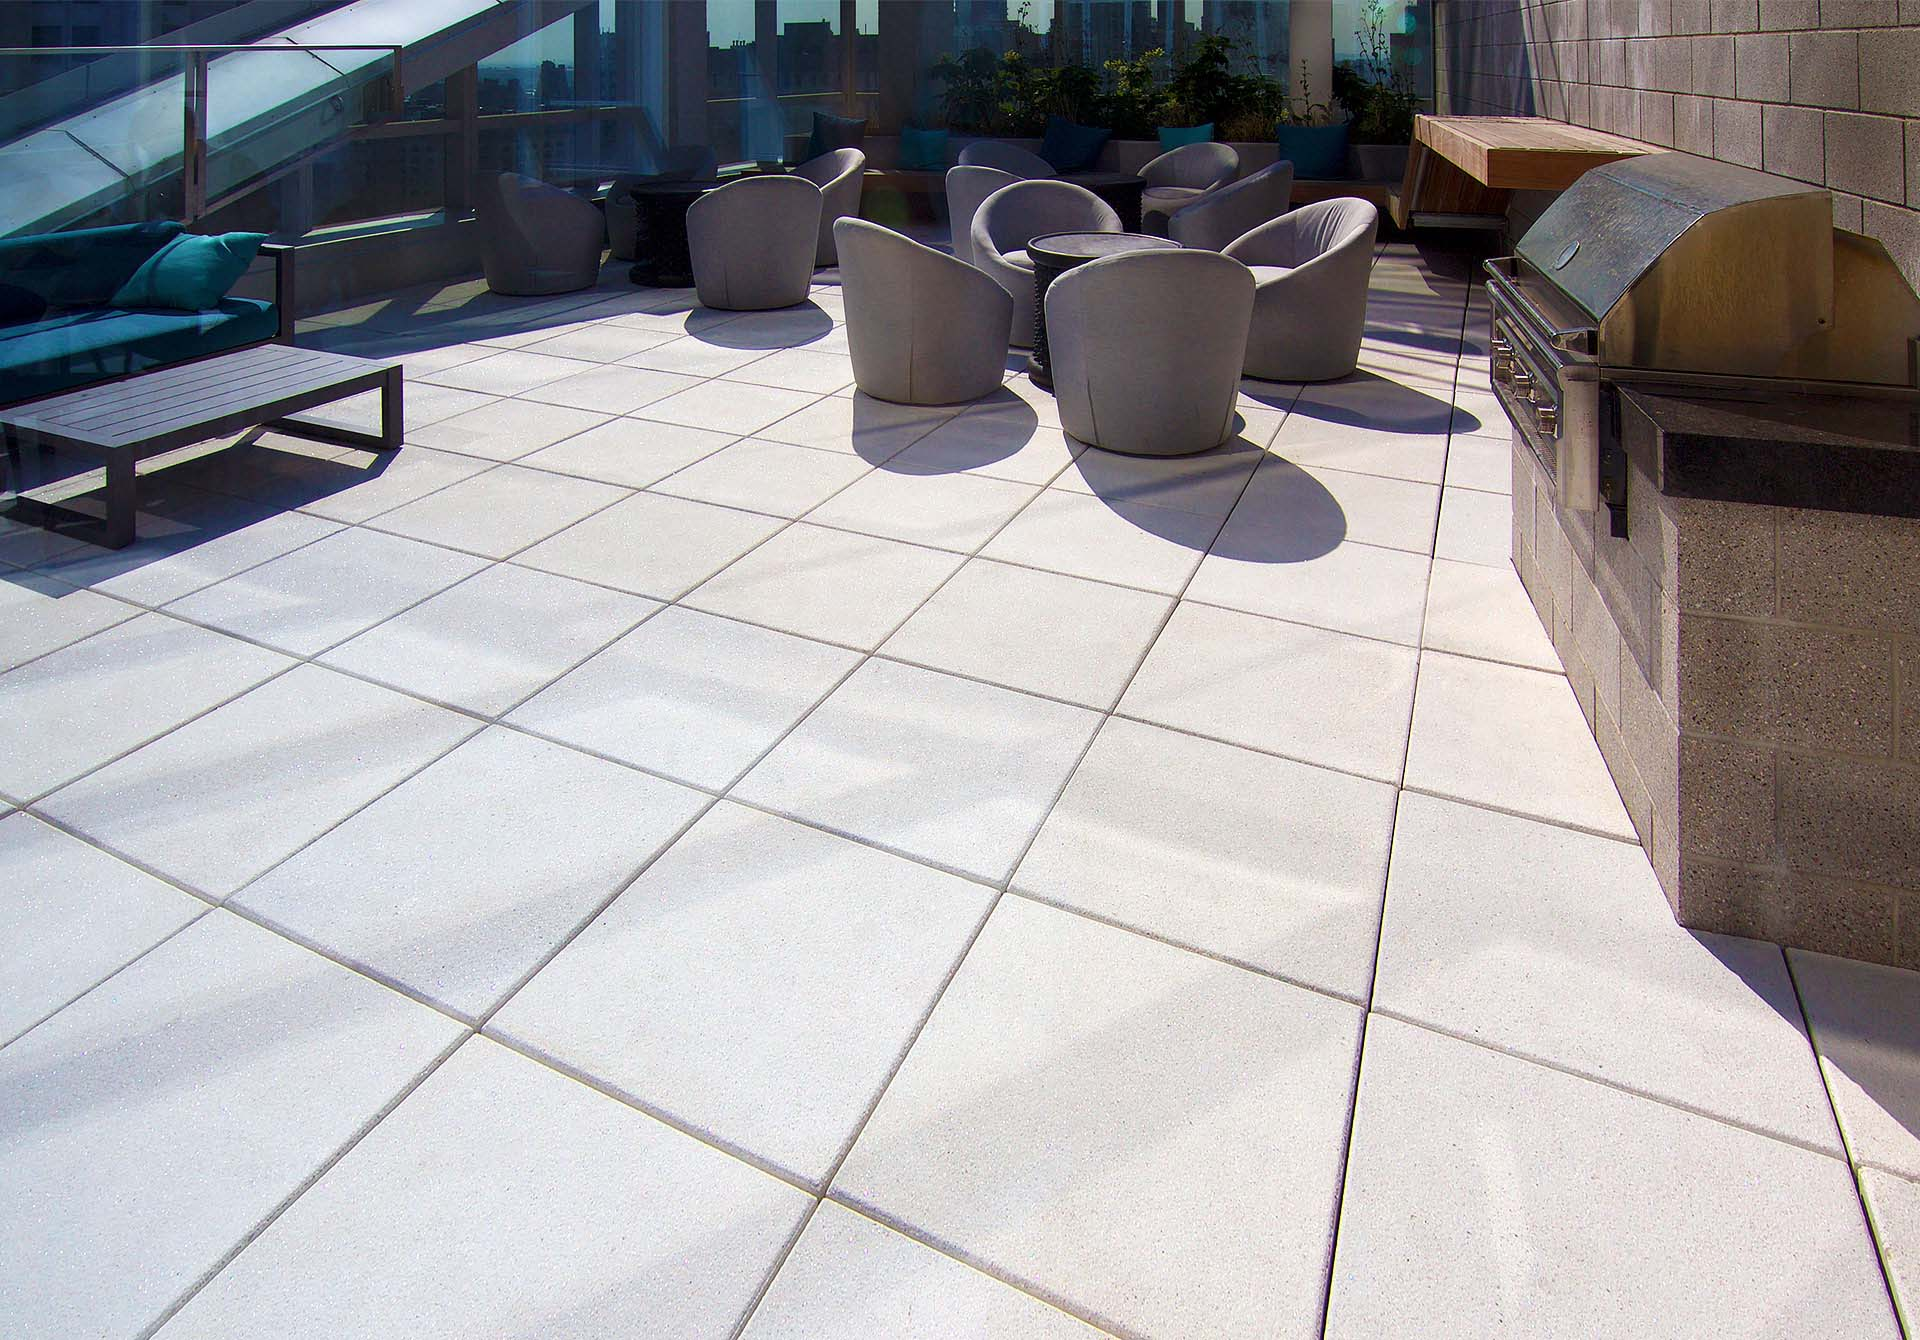 Commercial Architectural Patio Pavers